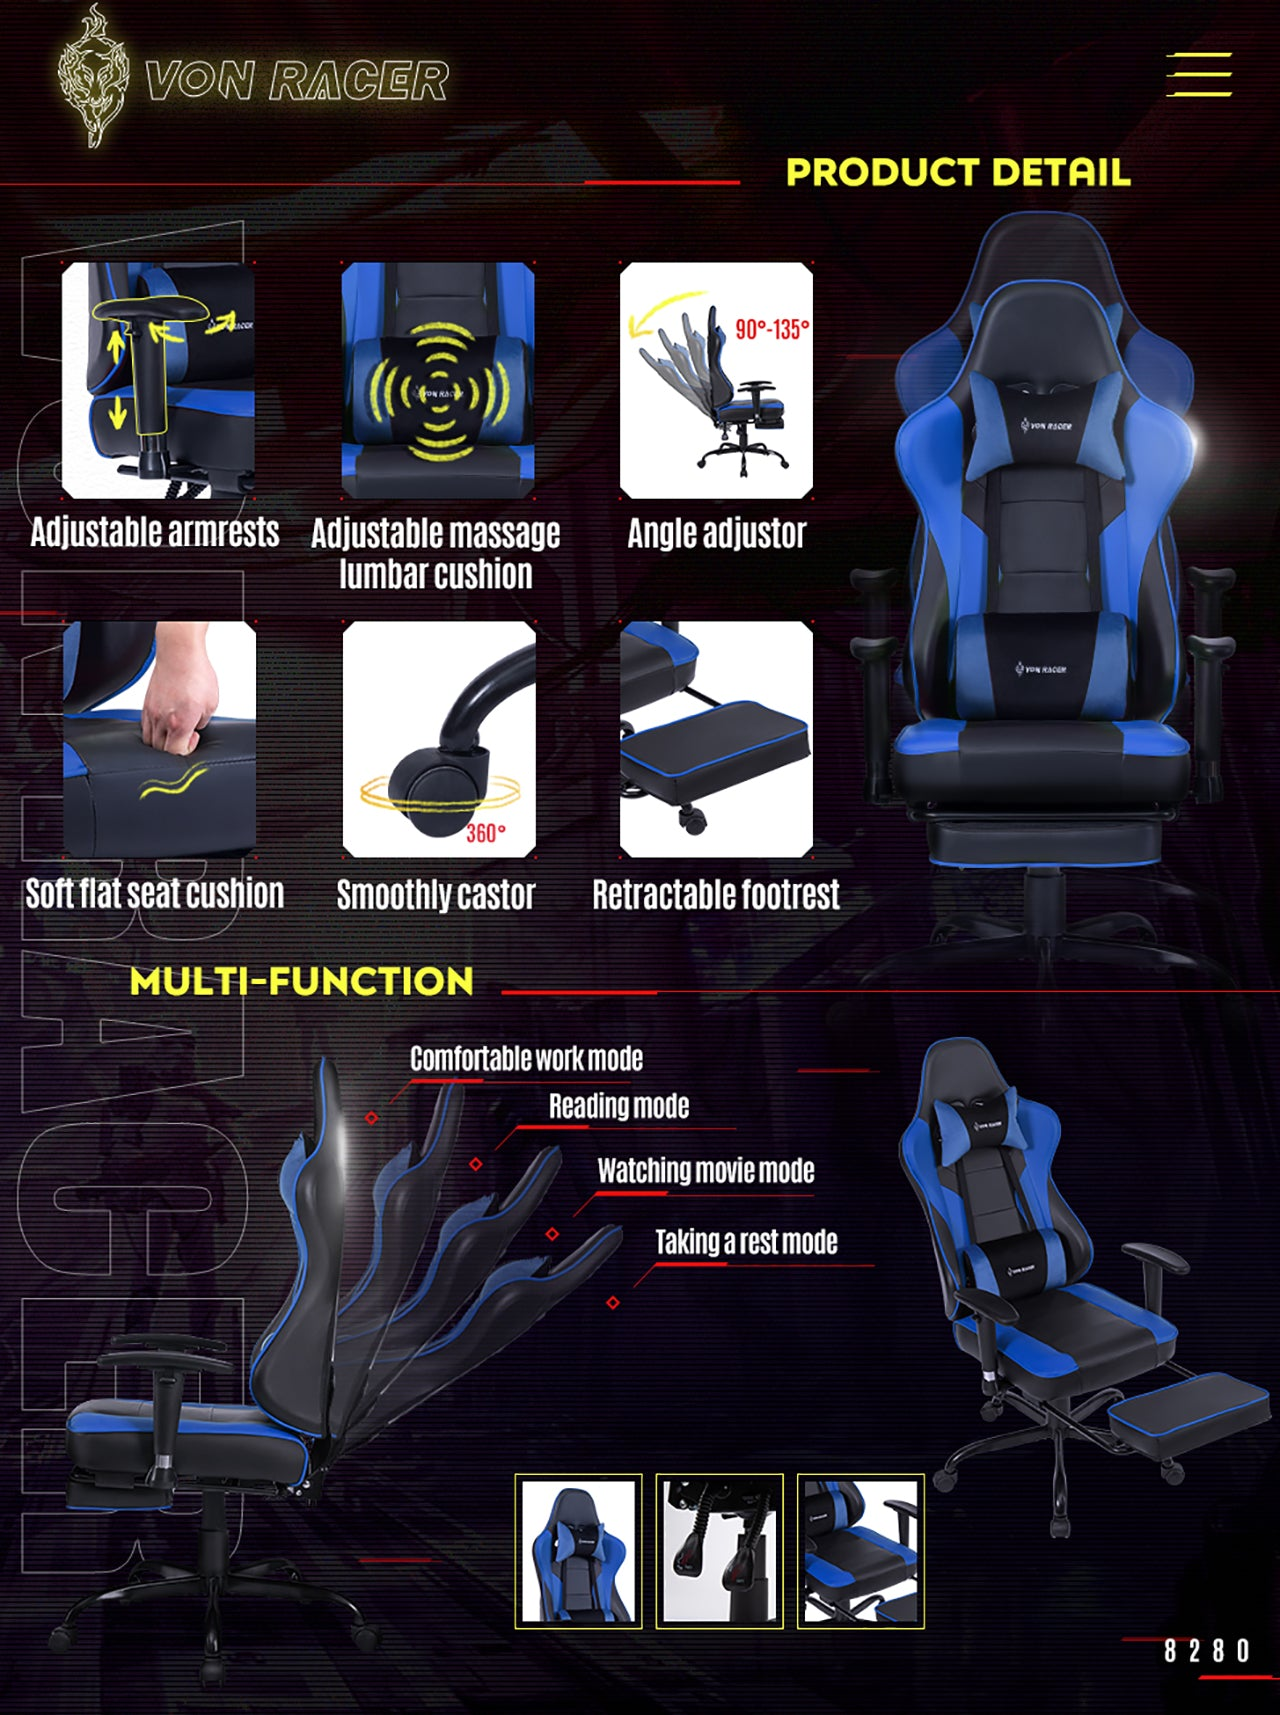 VON RACER ERGONOMIC GAMING CHAIR 8280 BLUE FEATURES